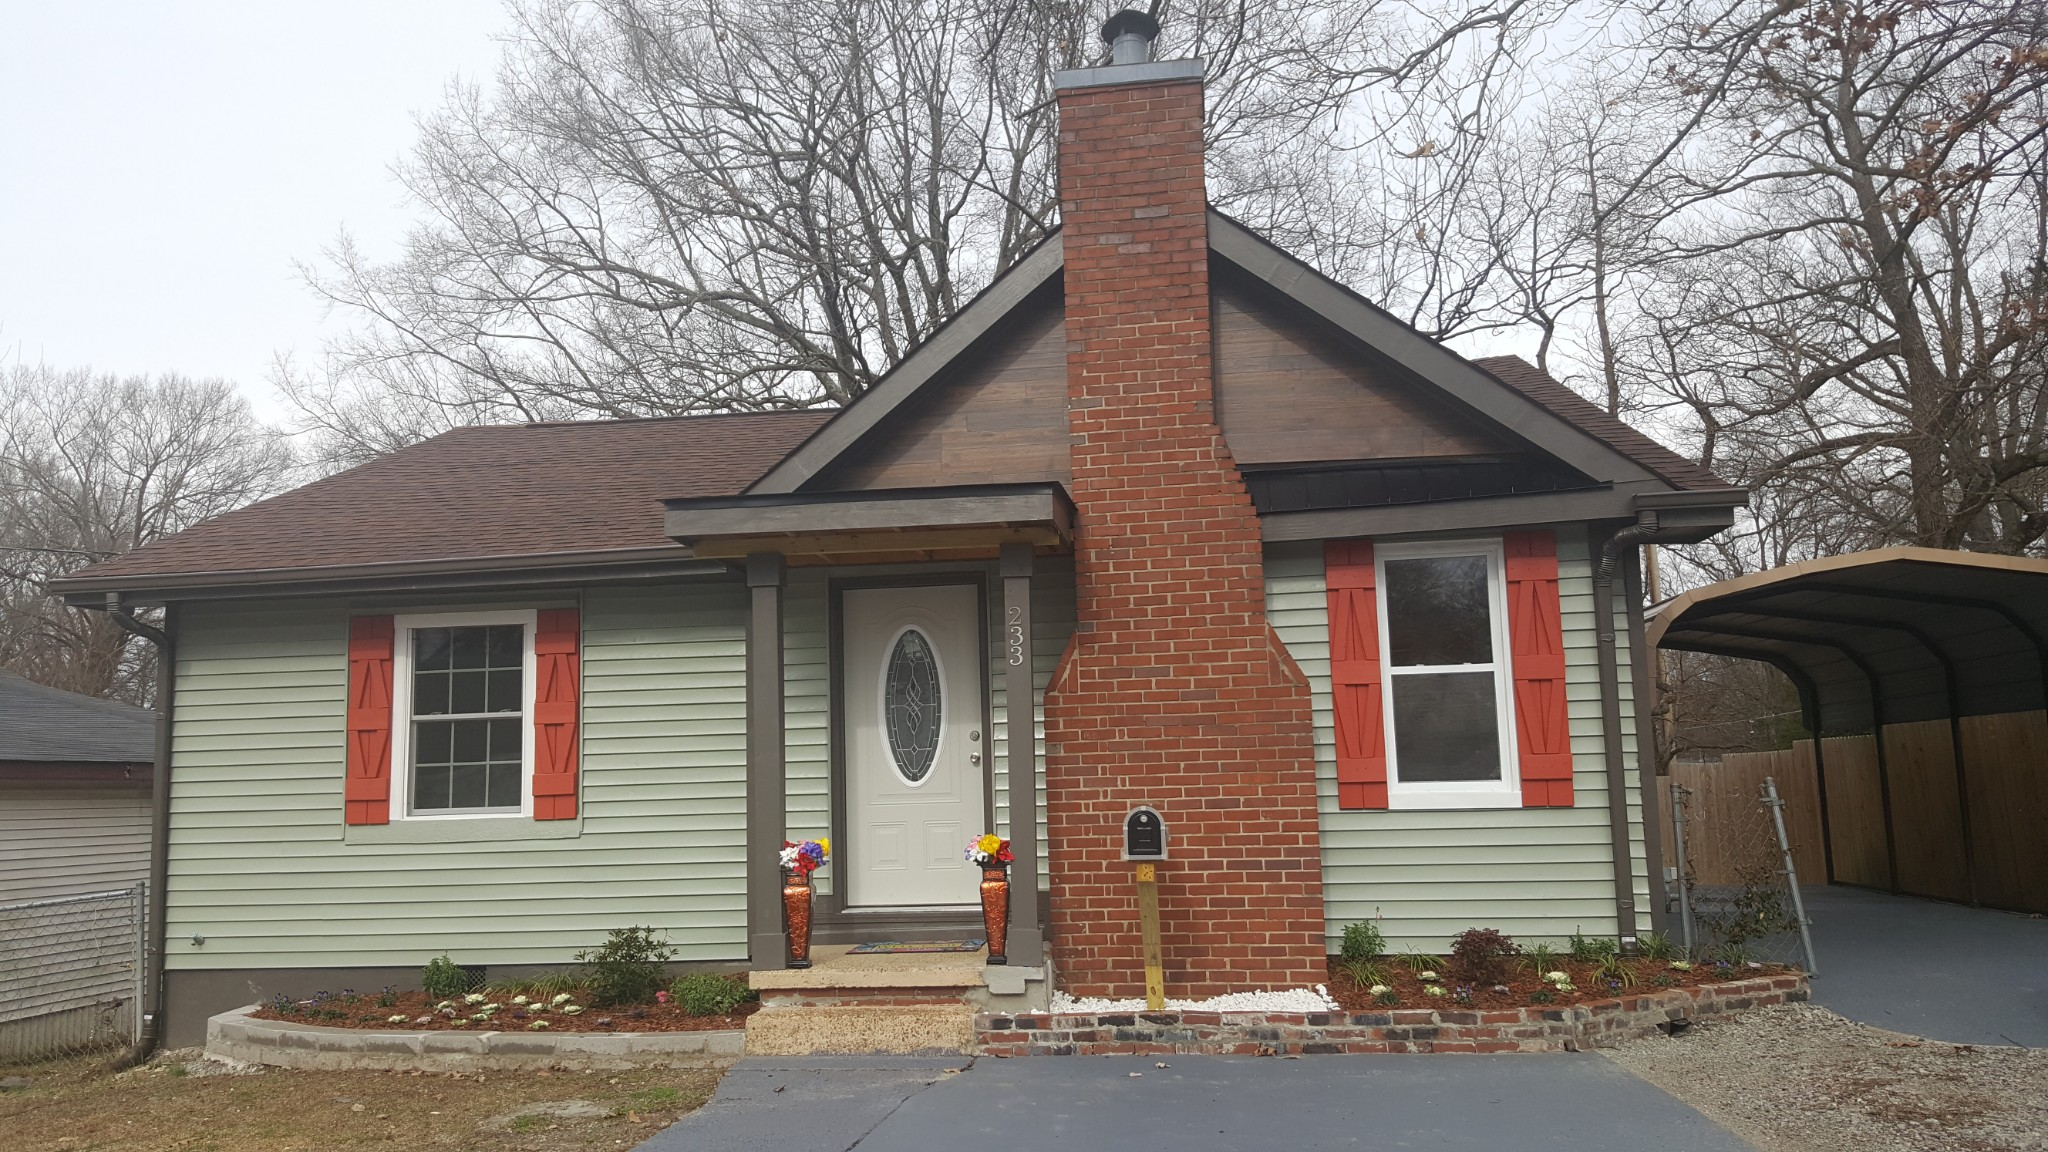 233 E 8th St, Trenton, TN 38382 - Trenton, TN real estate listing